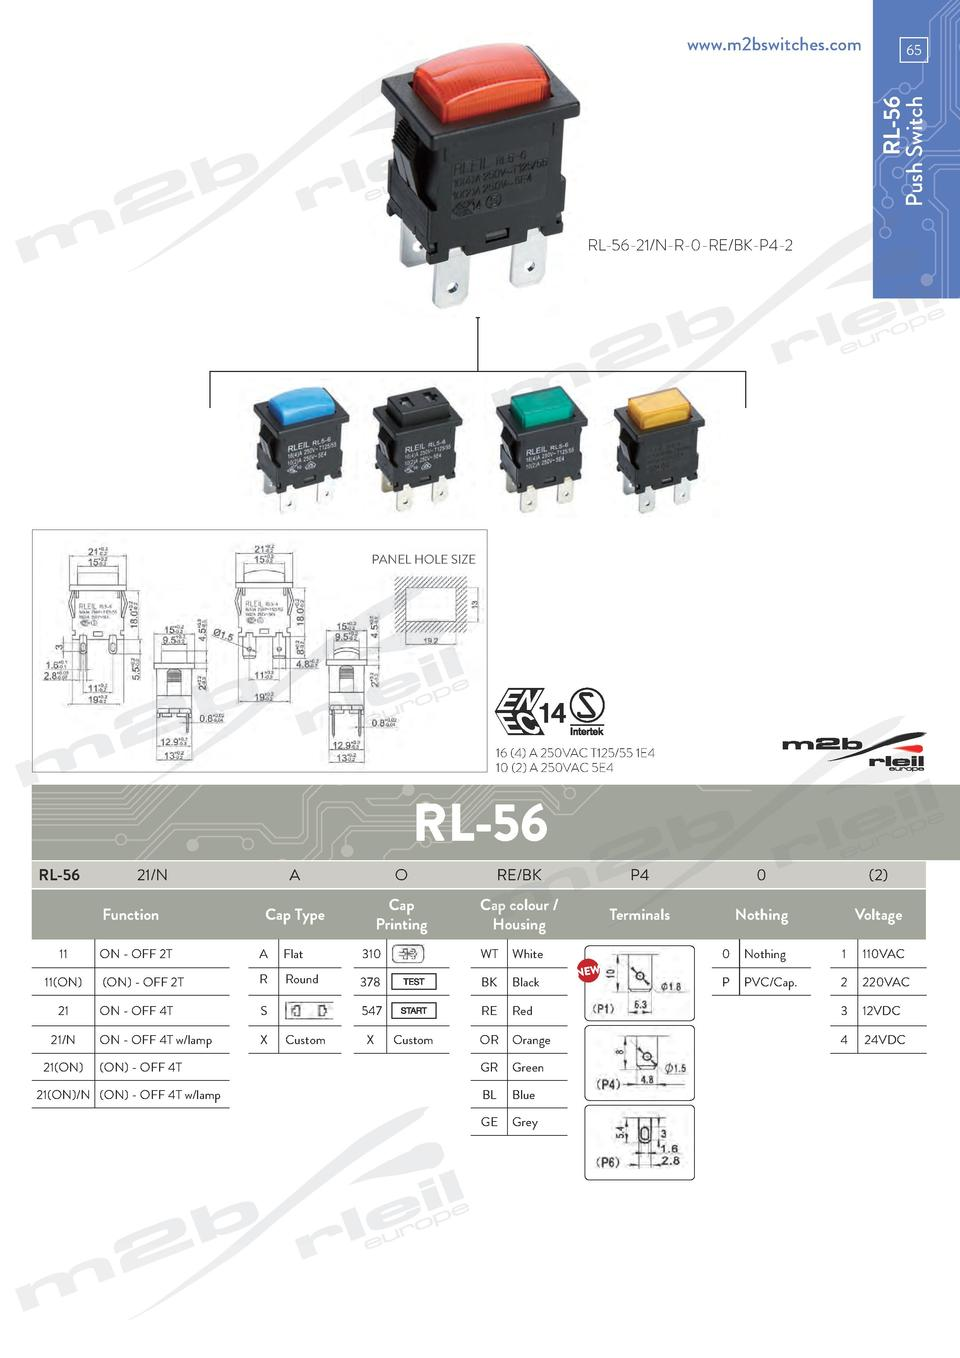 www.m2bswitches.com  RL-56 Push Switch  65  RL-56-21 N-R-0-RE BK-P4-2  PANEL HOLE SIZE  16  4  A 250VAC T125 55 1E4 10  2 ...